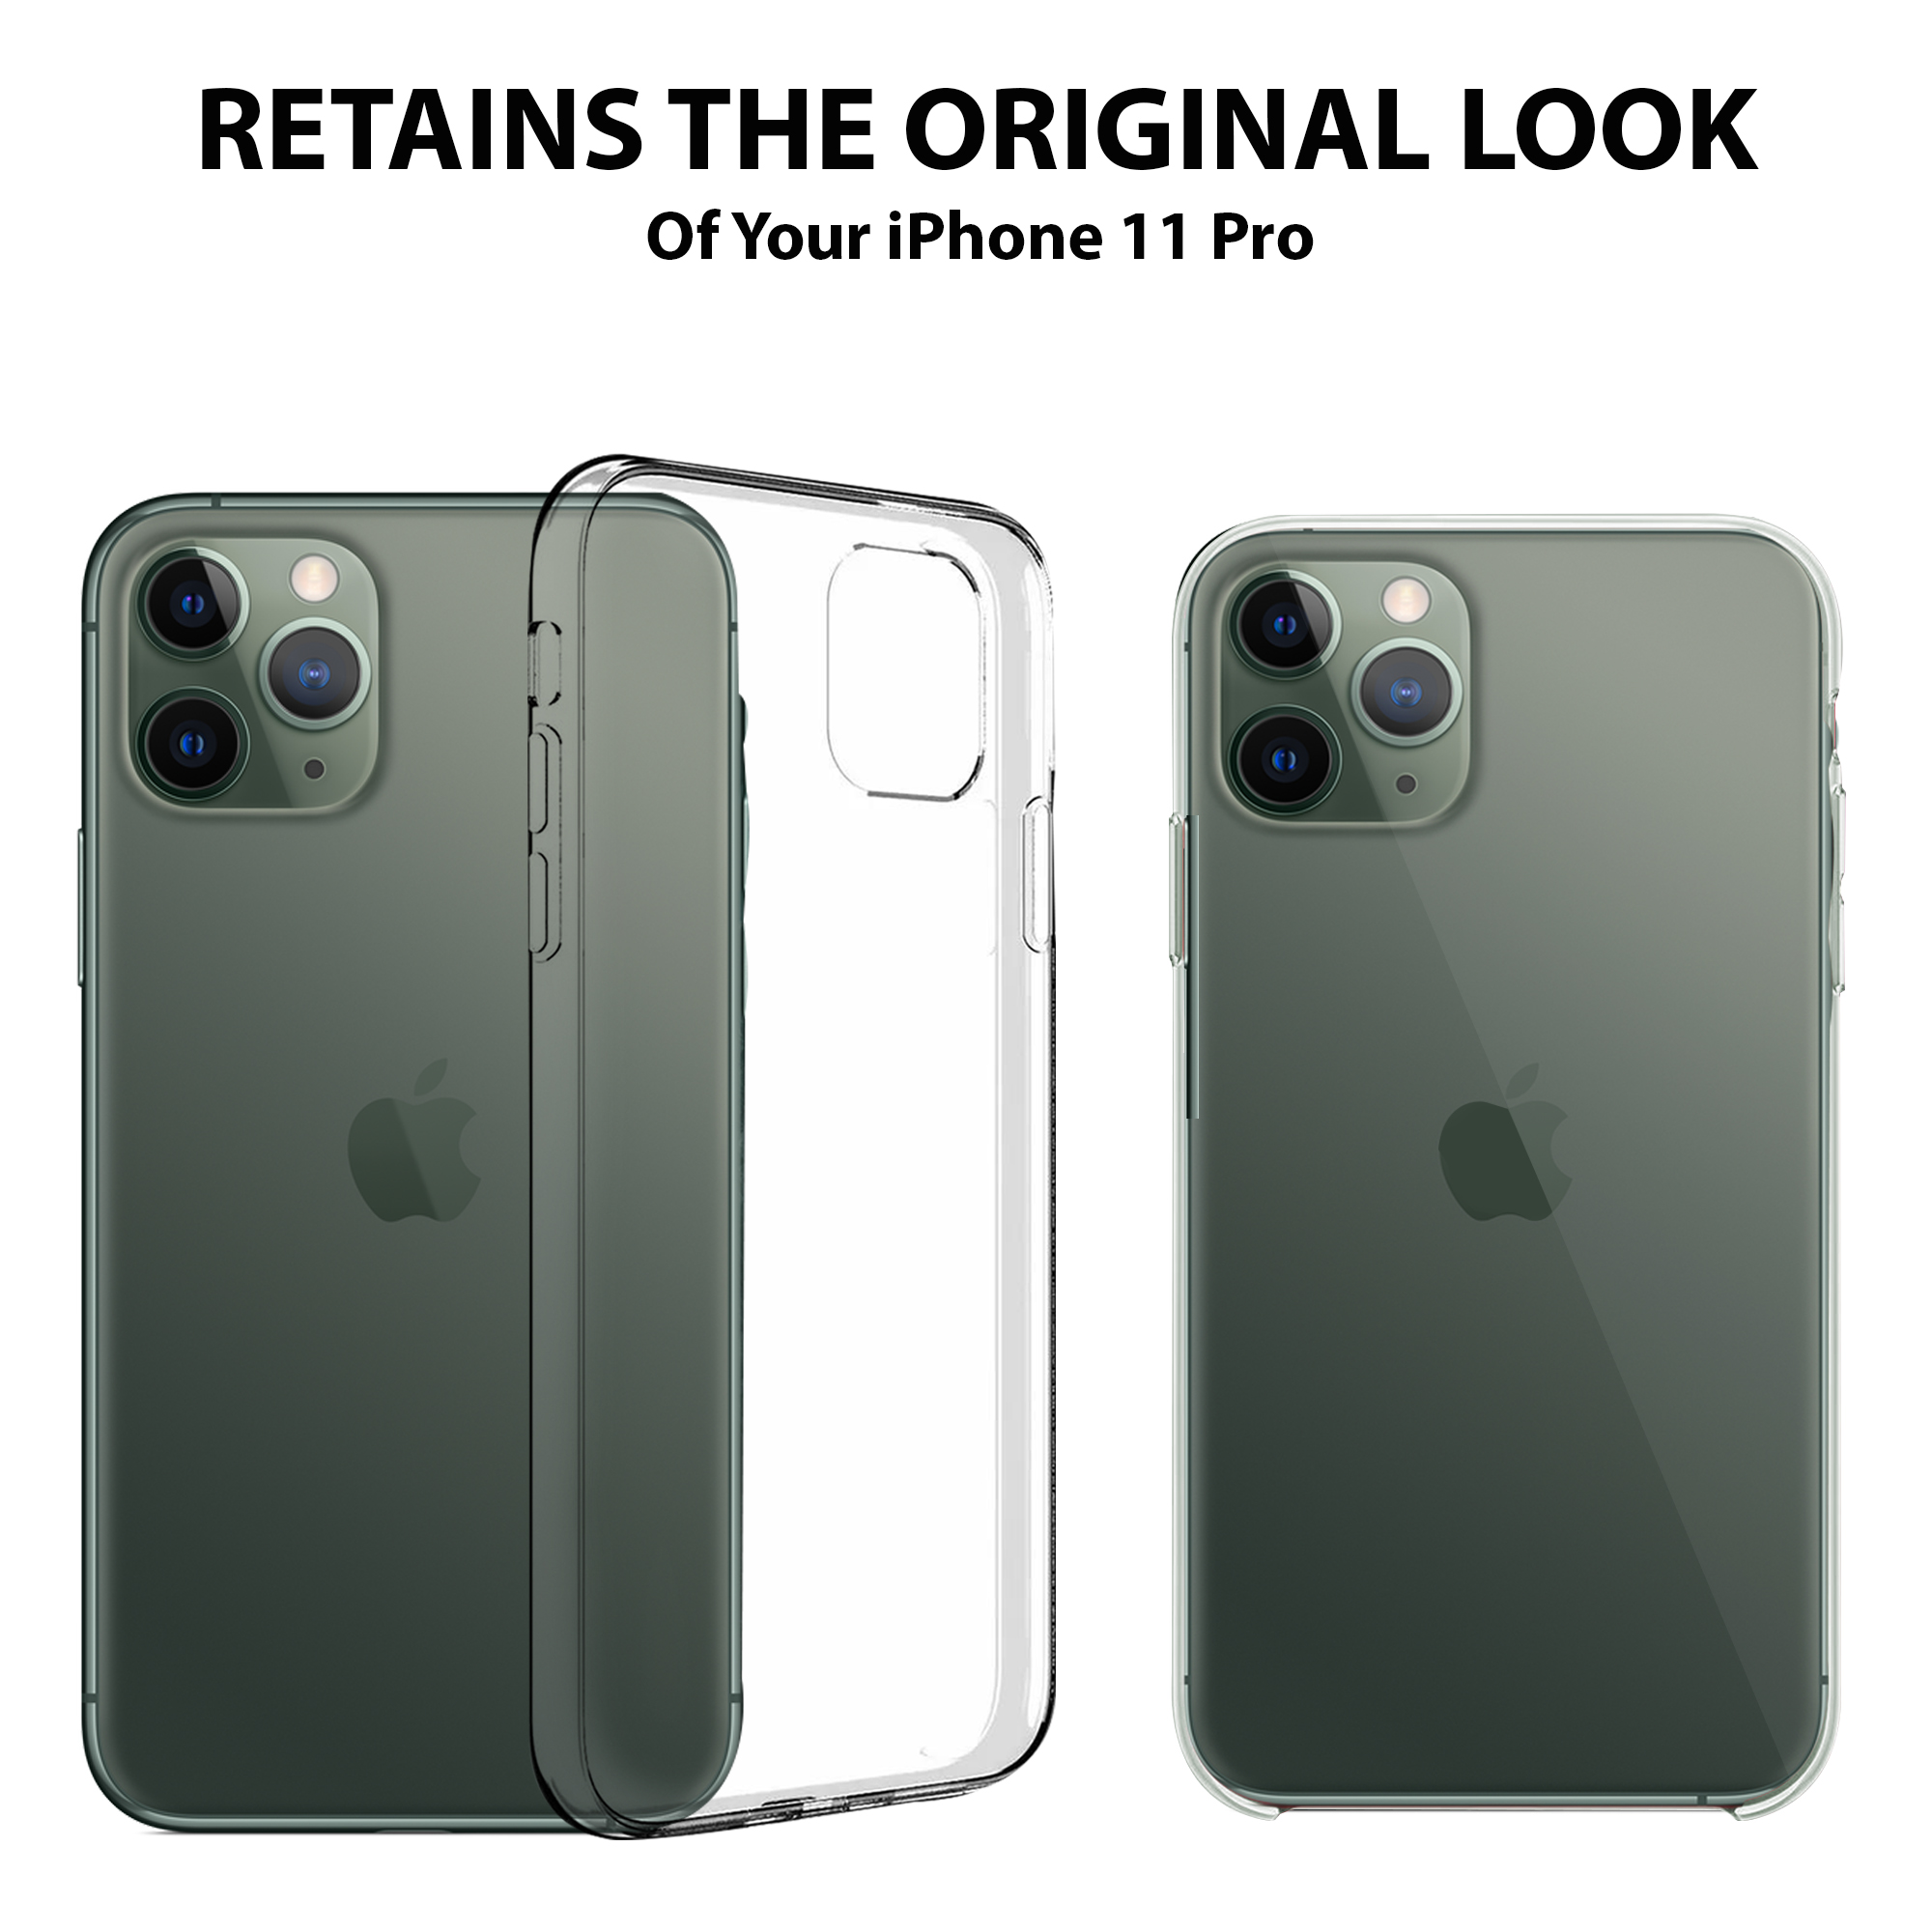 Clear Case + 2 Screens iPhone11 Pro ProMax iPhone 11 Complete Protection Bundle - Zorquax Hybrid (Hard PC Back, Soft TPU Sides) Shockproof & Case-on Charging Case with Two (2X) 9H Tempered Glass Screen Protectors